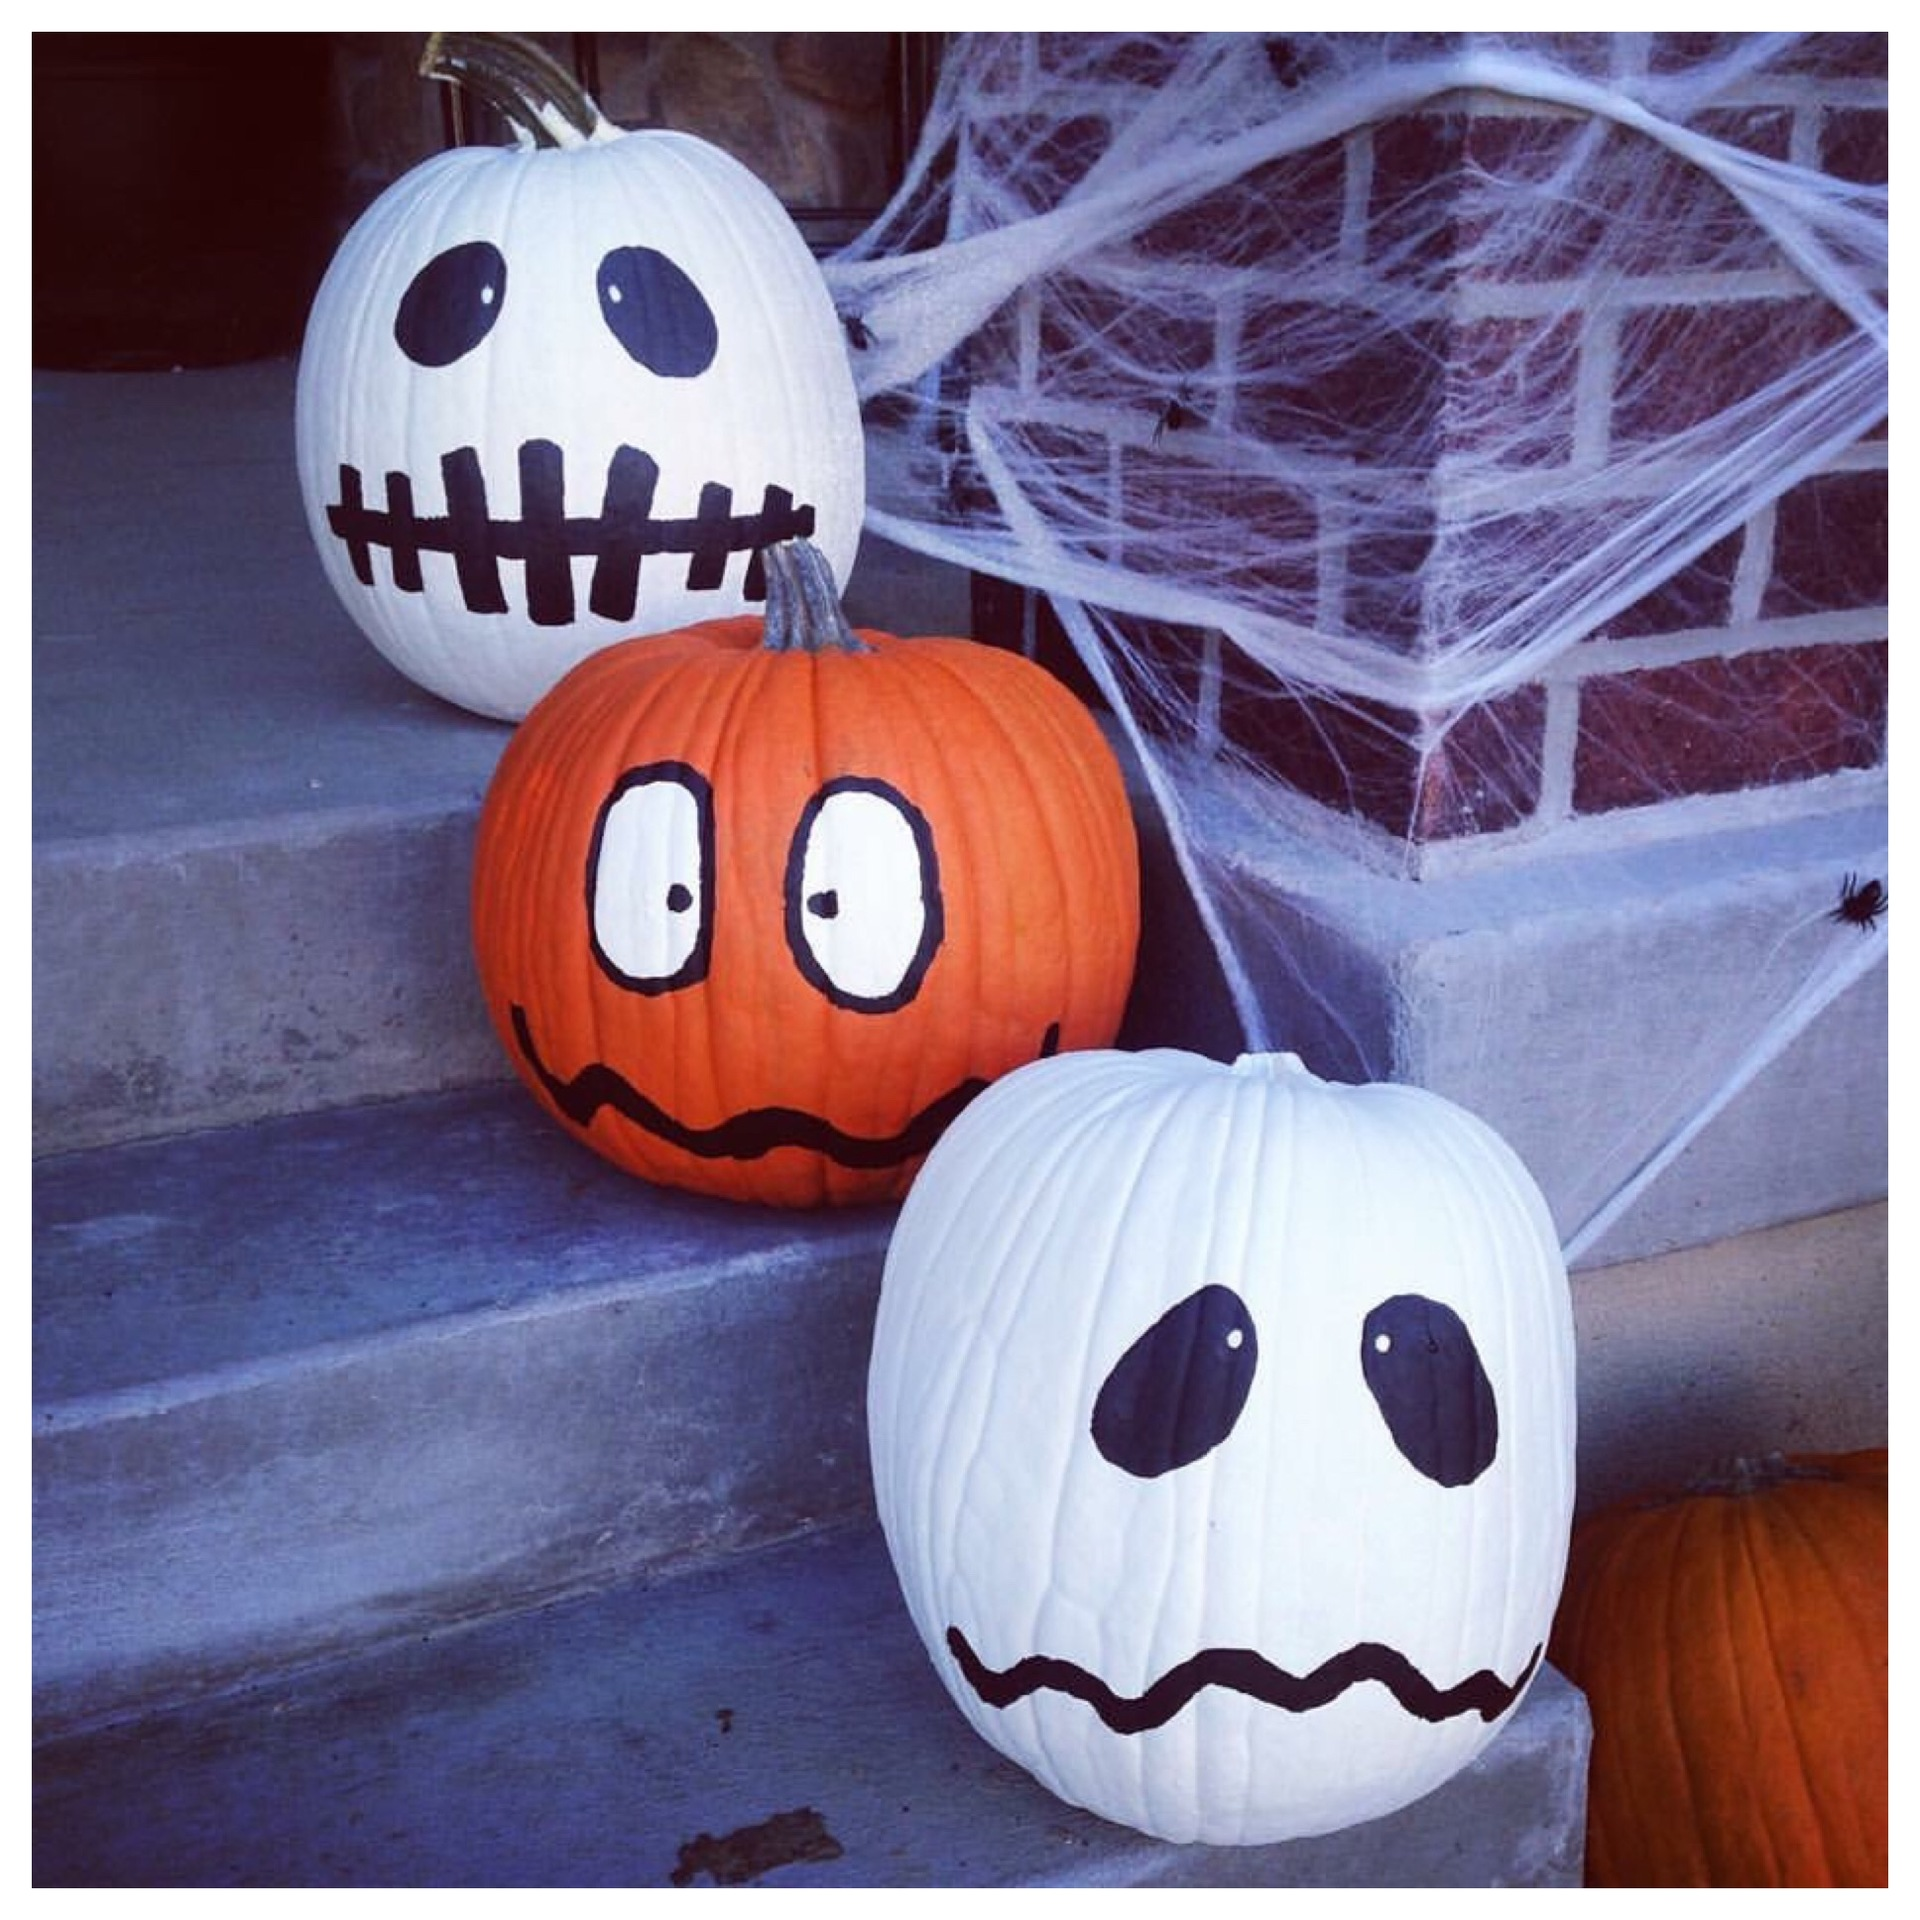 Each year me and my boys paint pumpkins together. It has become a fun tradition